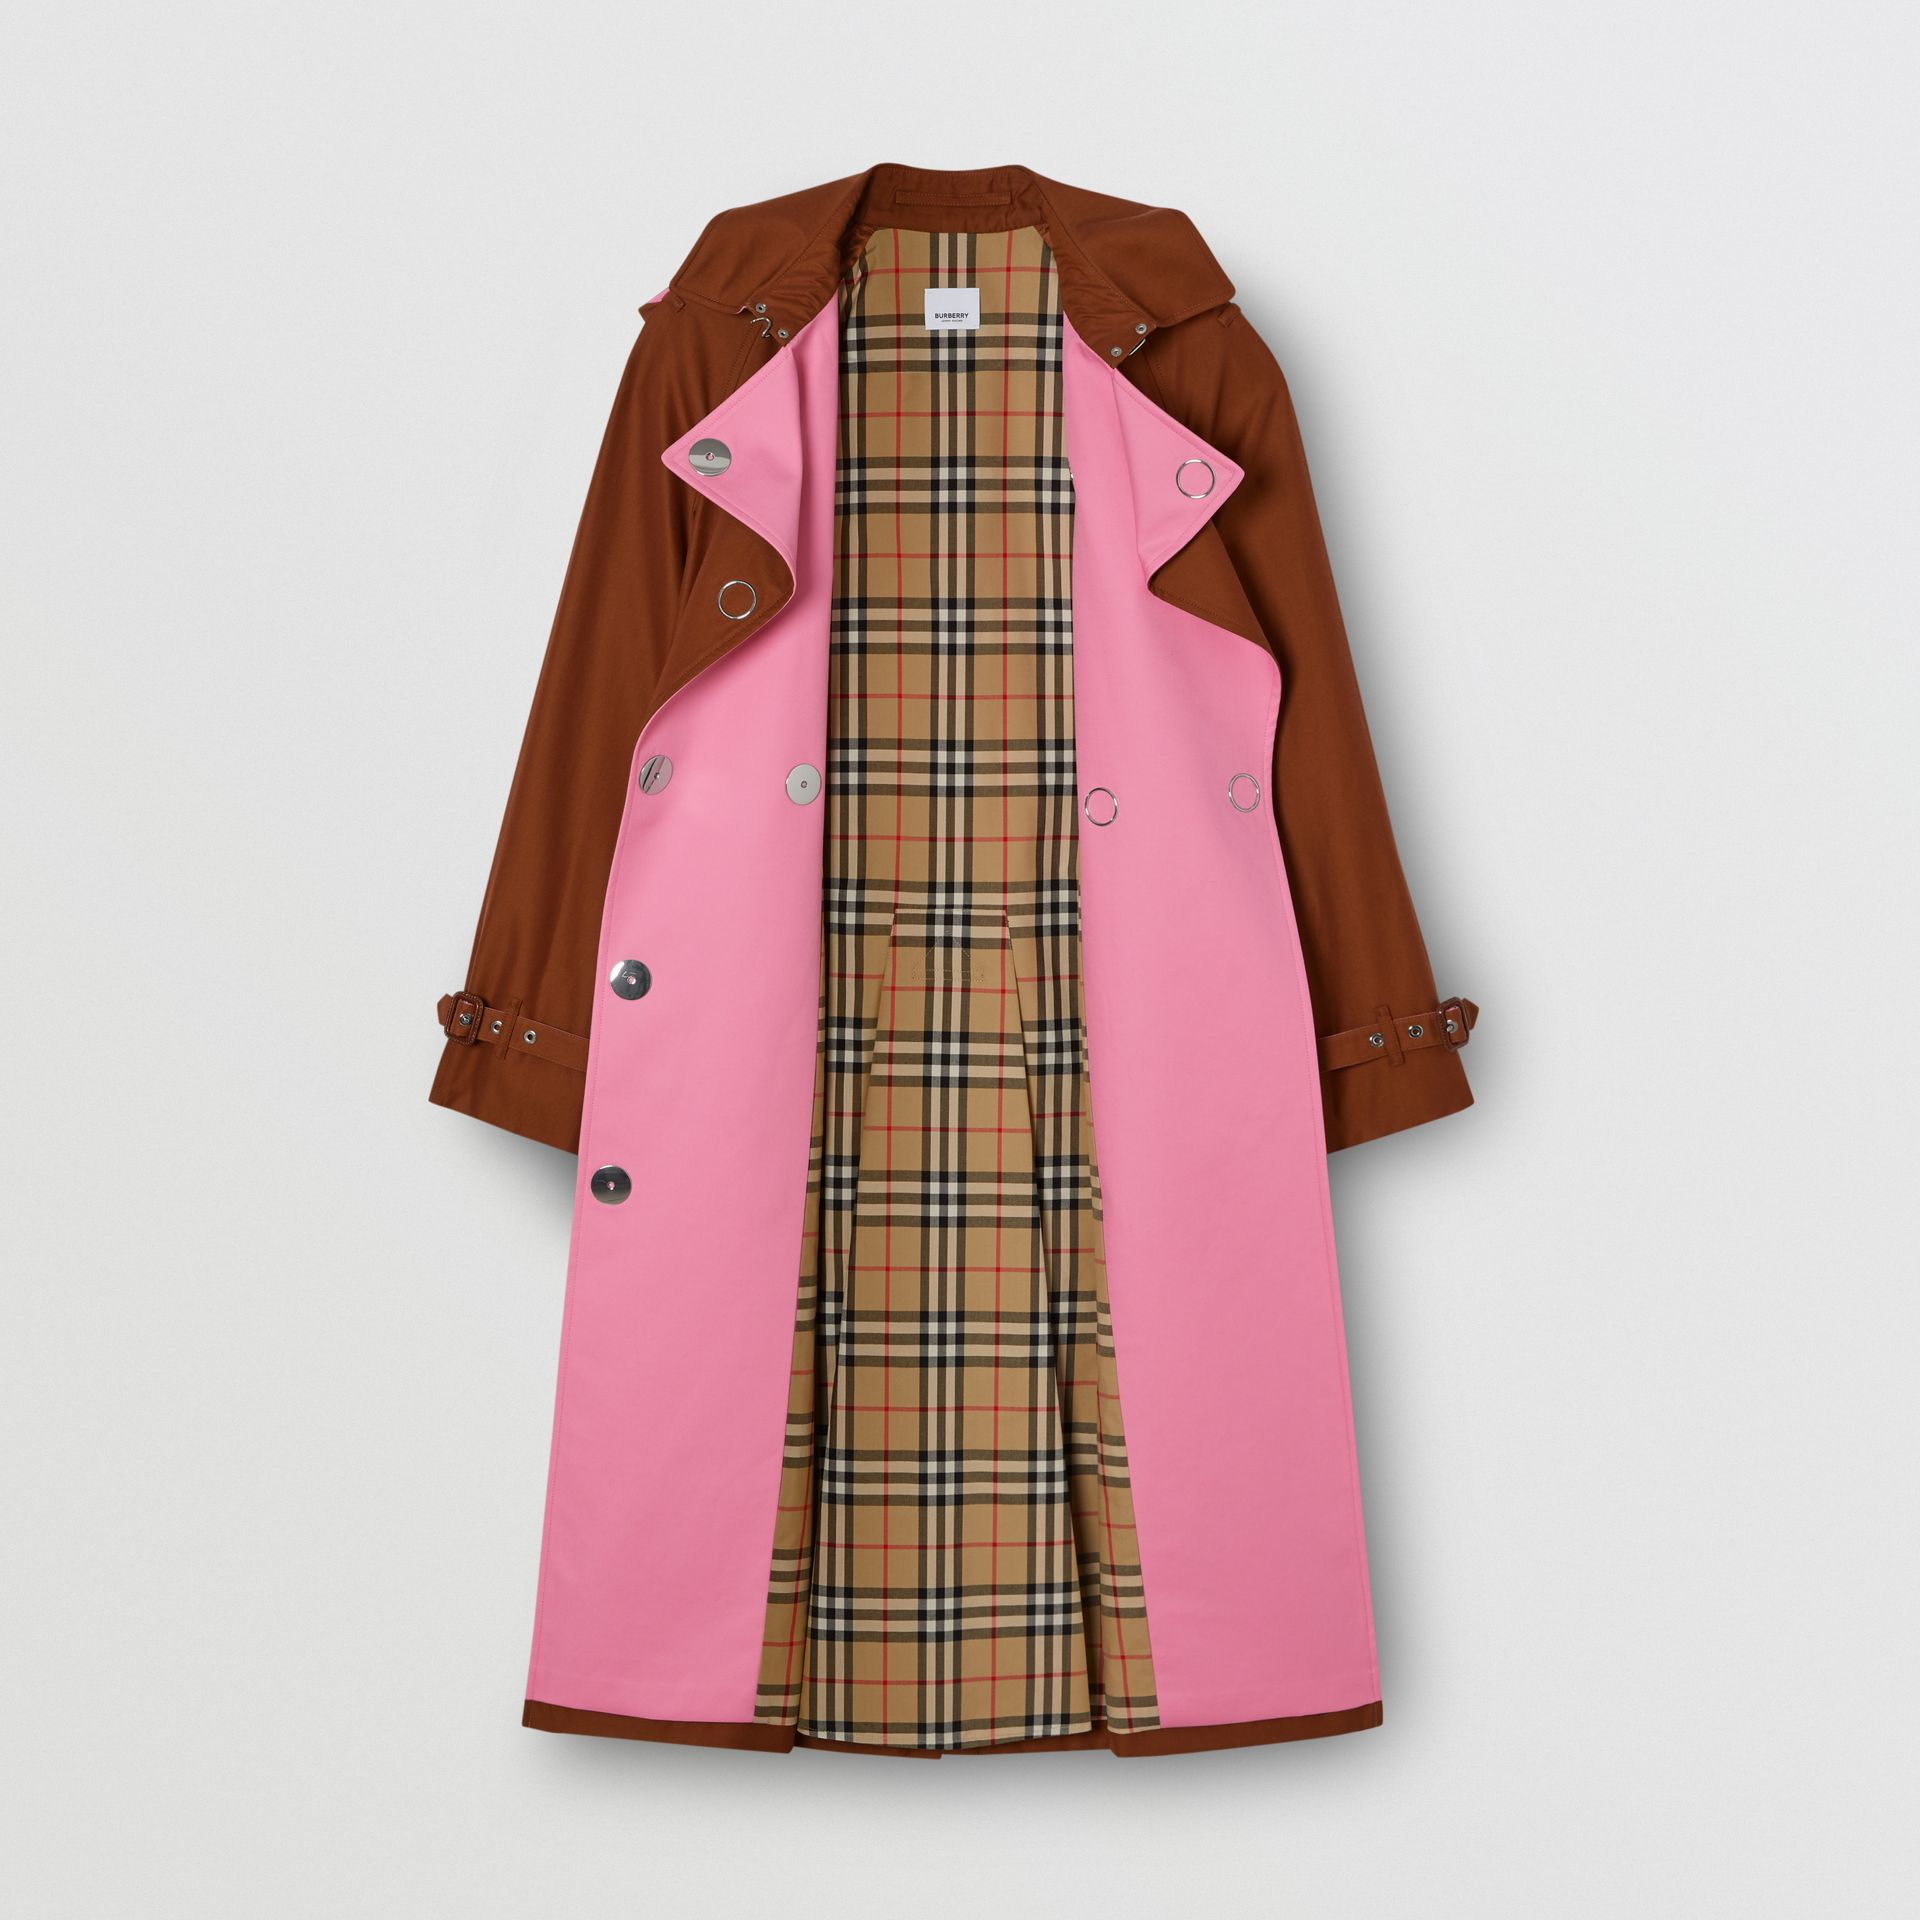 Colour Block Cotton Gabardine Trench Coat in Chestnut Brown - Women | Burberry - gallery image 6